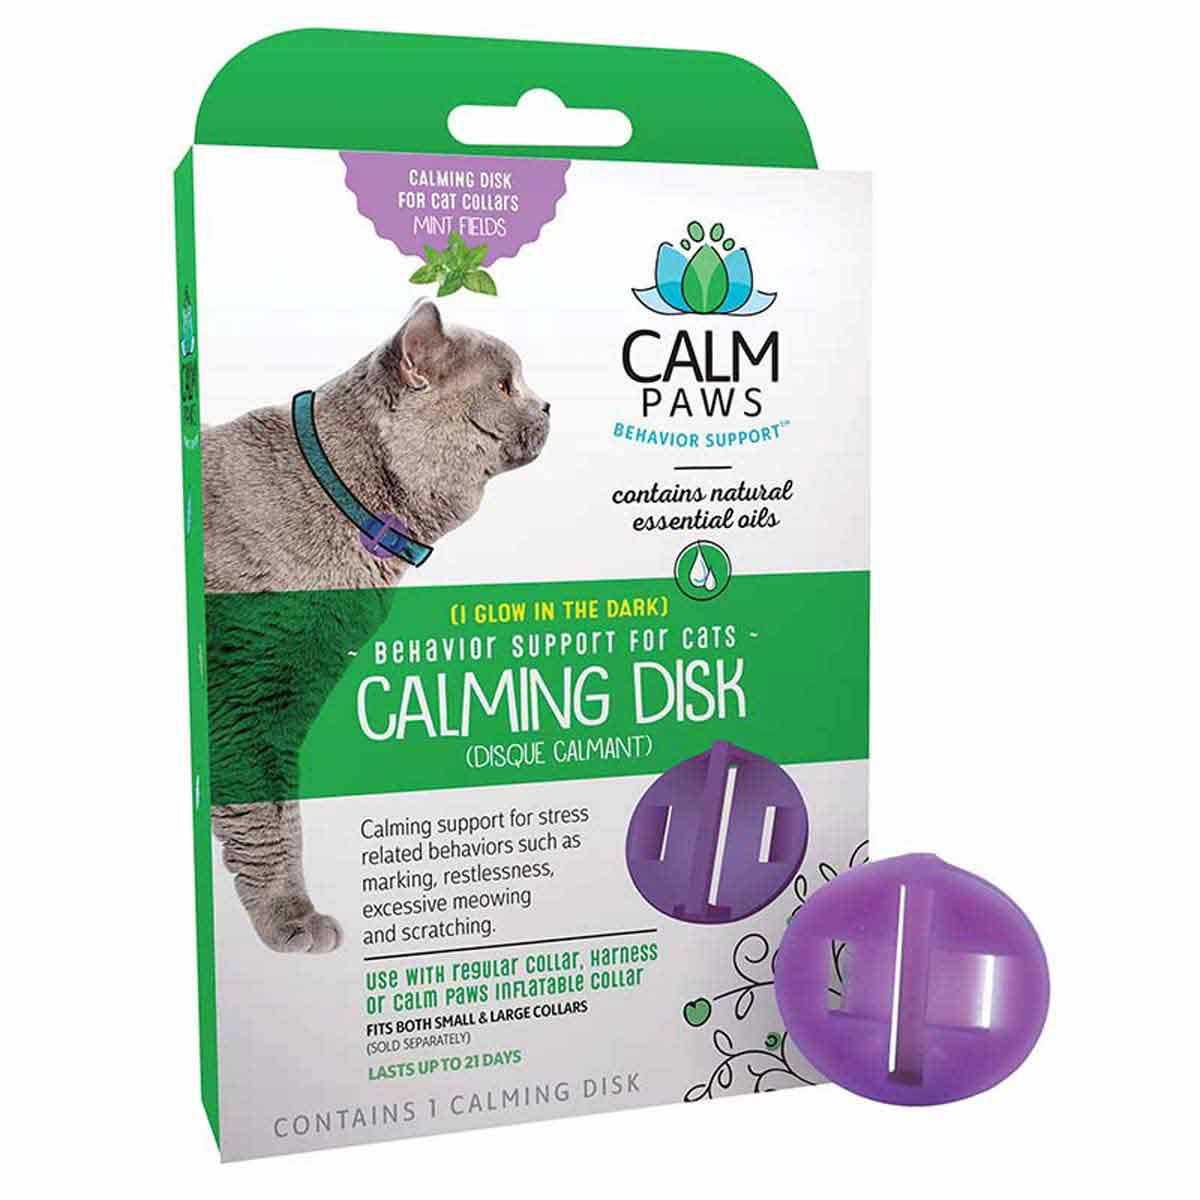 Box for Calm Paws Calming Disk for Cats